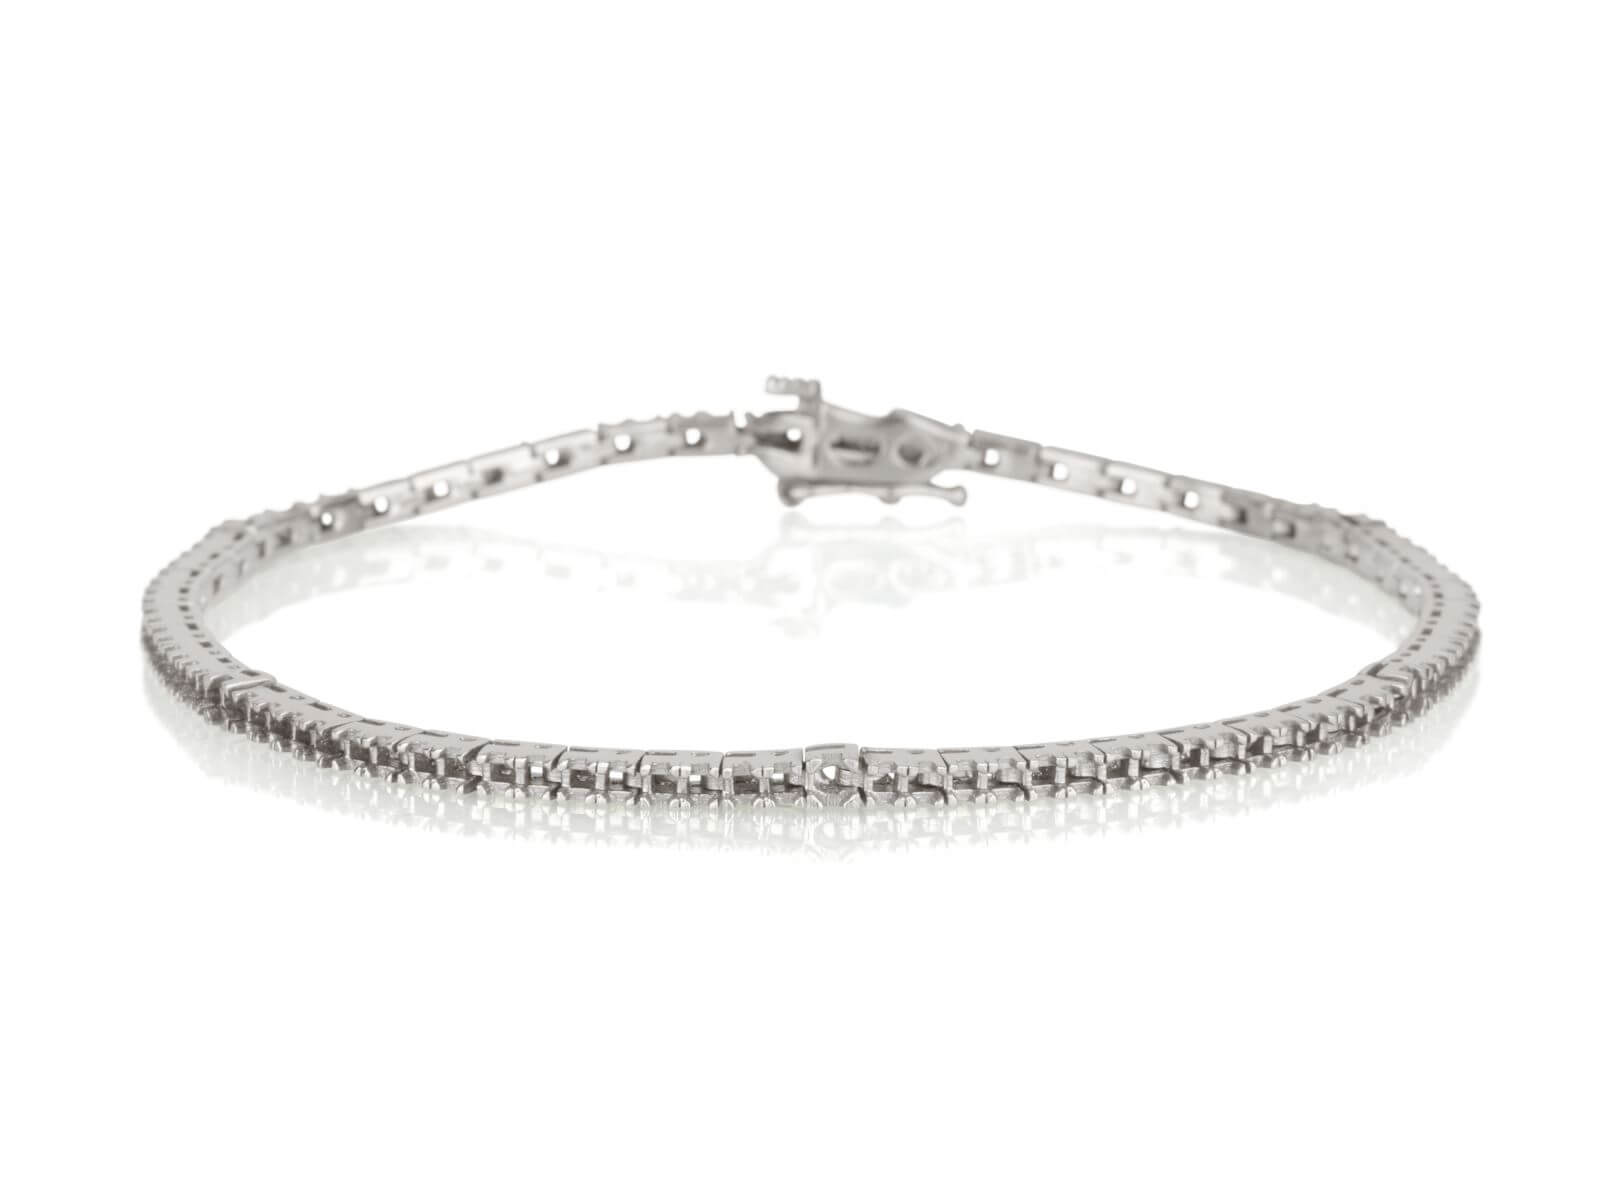 Tennis bracelet 4 prongs 3